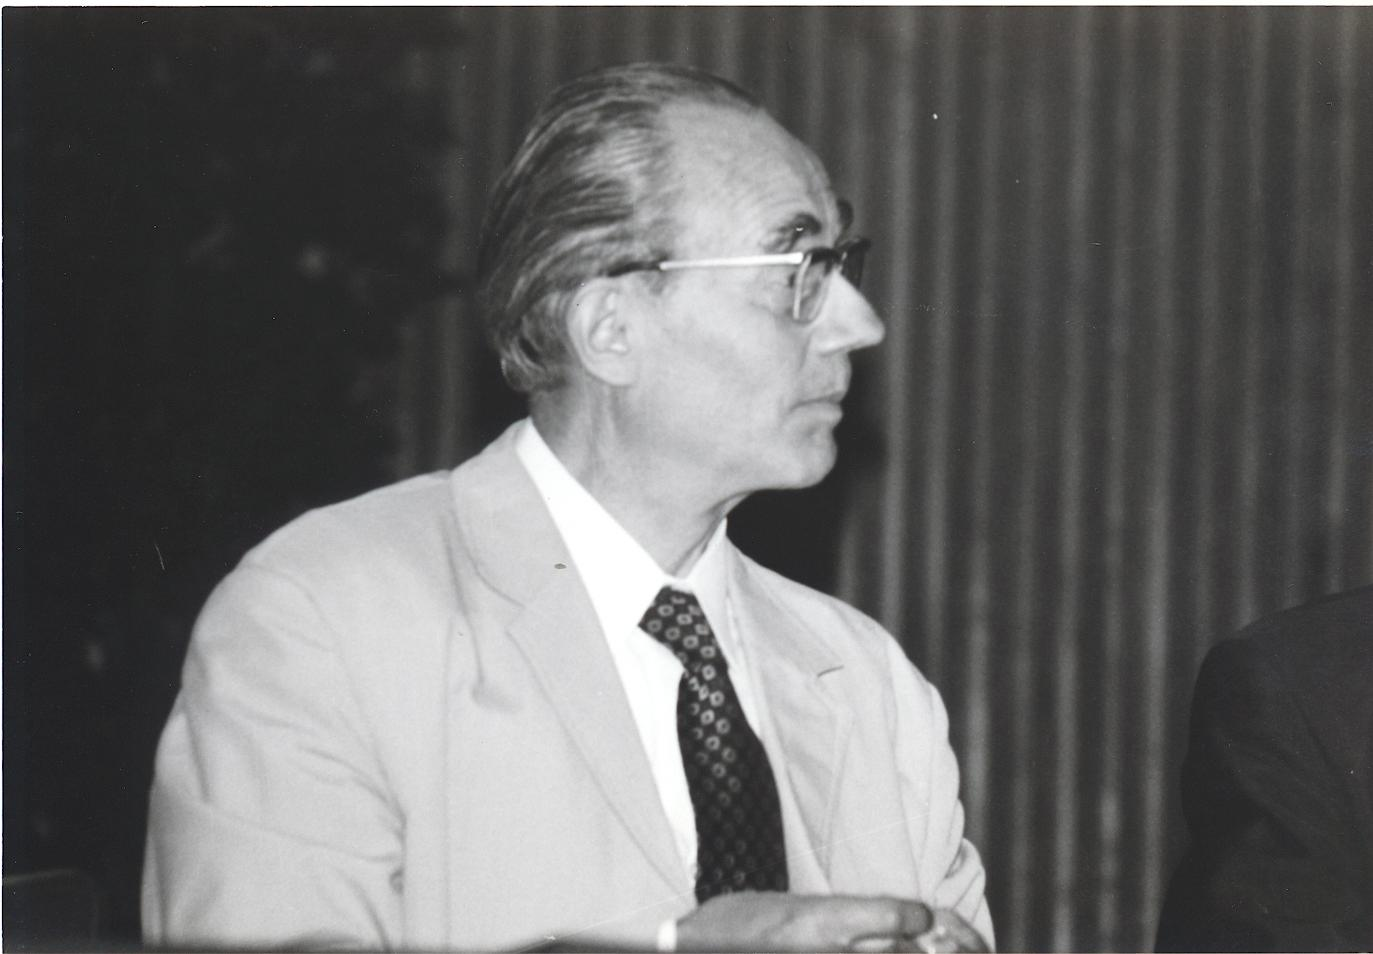 VII. Internationaler Imago Mundi-Kongress 1978, Innsbruck, Prof. Dr. Erwin Nickel